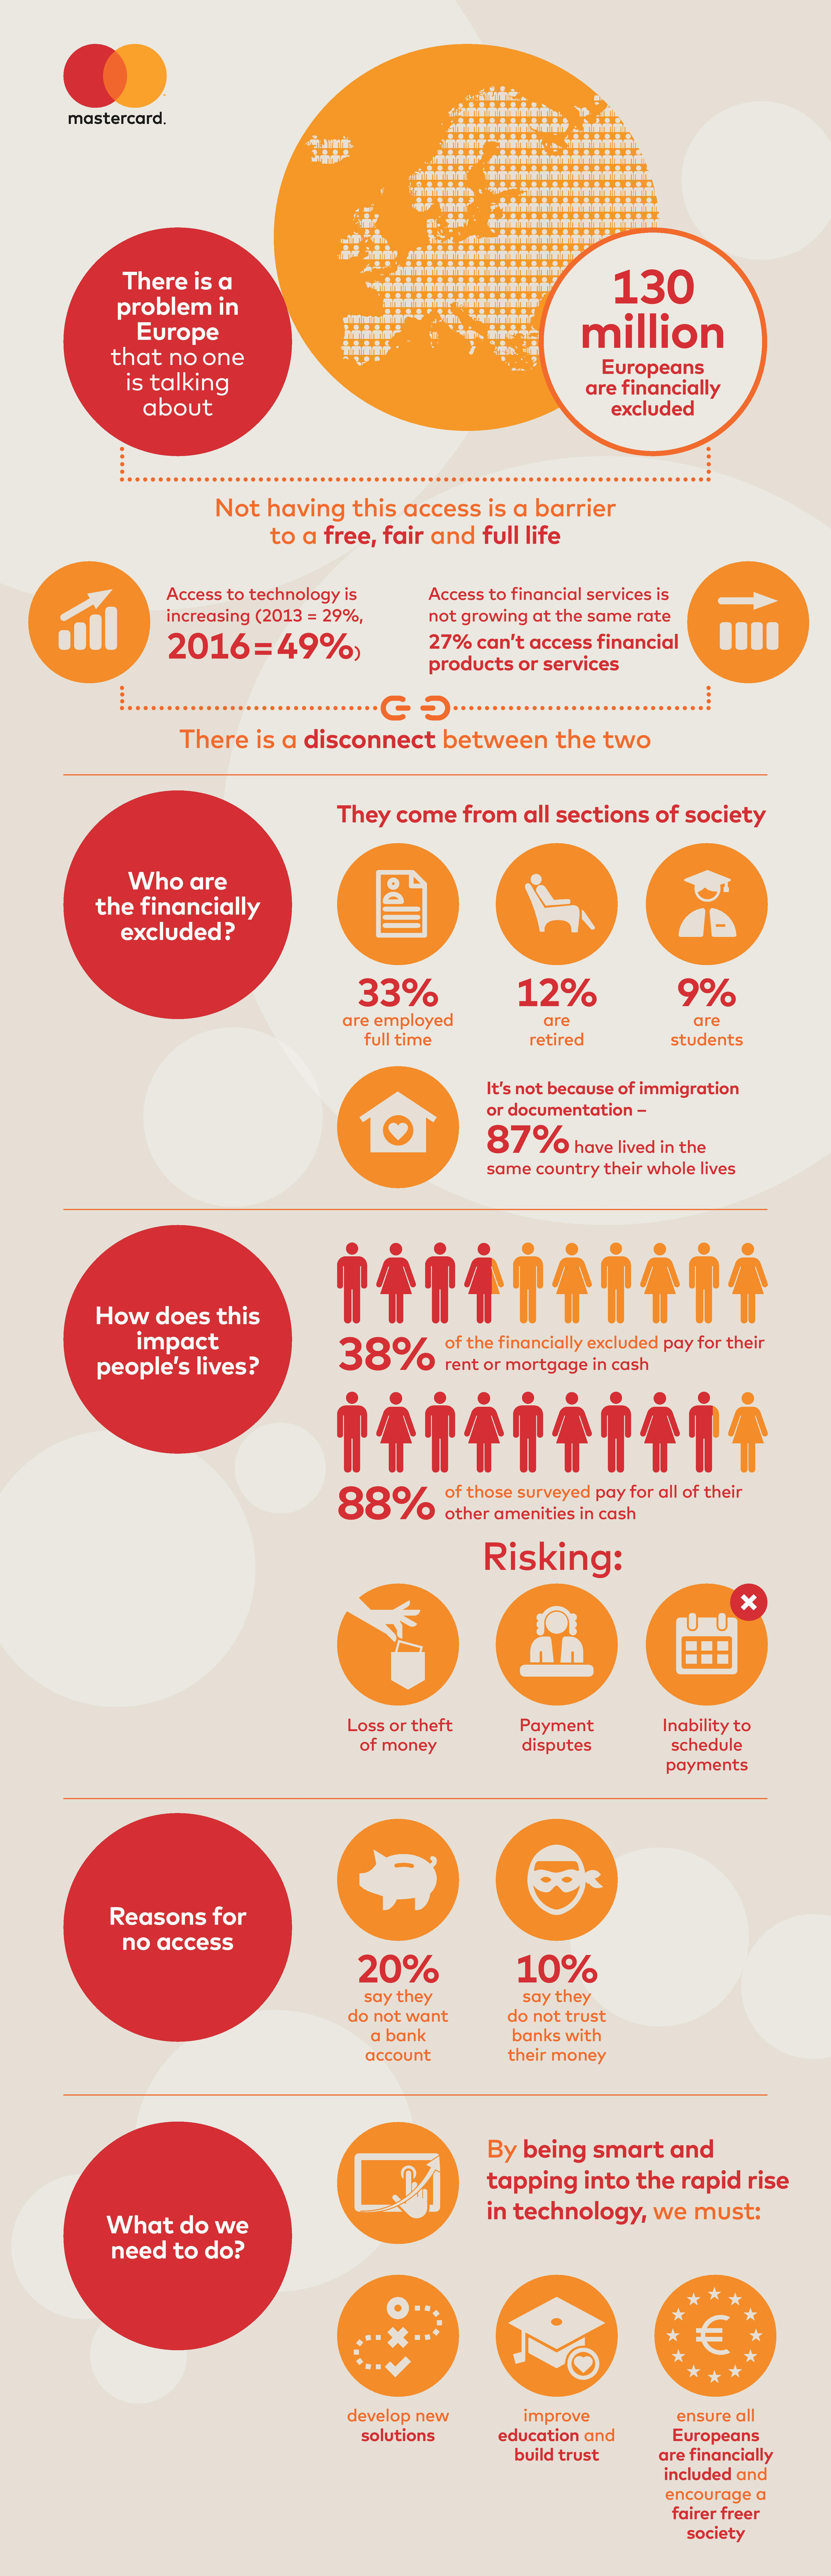 mastercard-financial-inclusion-infographic-page-001